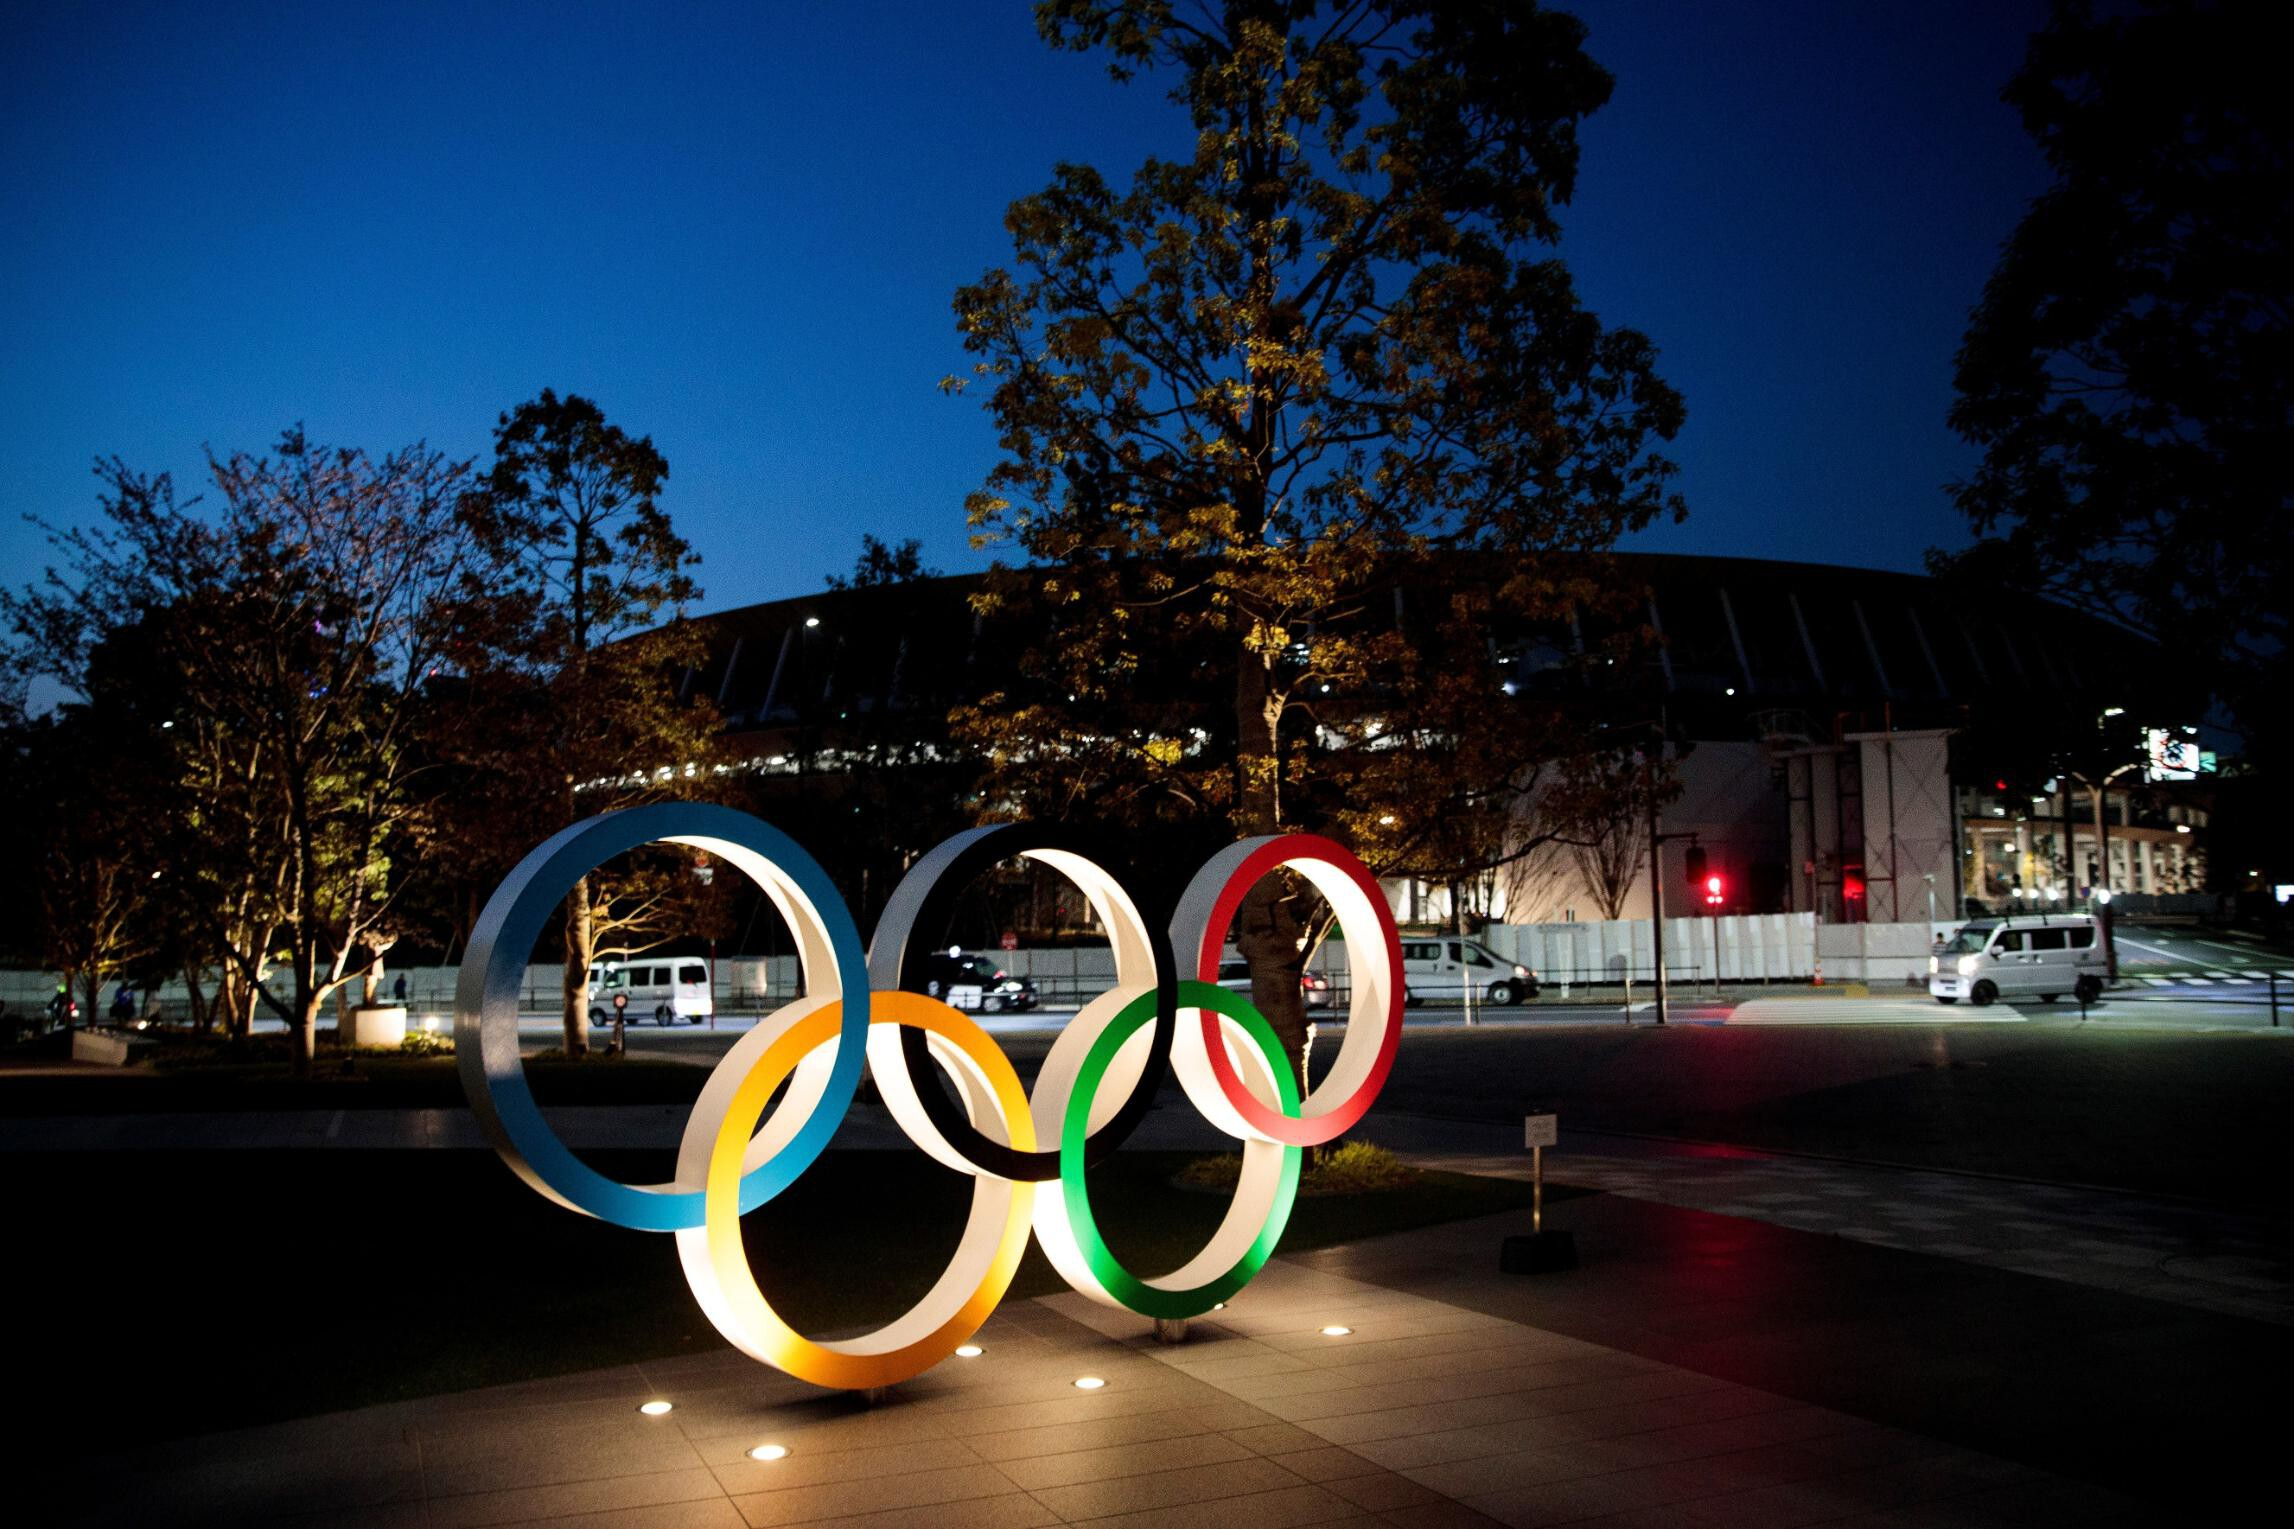 <i>BEHROUZ MEHRI/AFP/AFP via Getty Images</i><br/>The Olympic rings are displayed outside the National Stadium